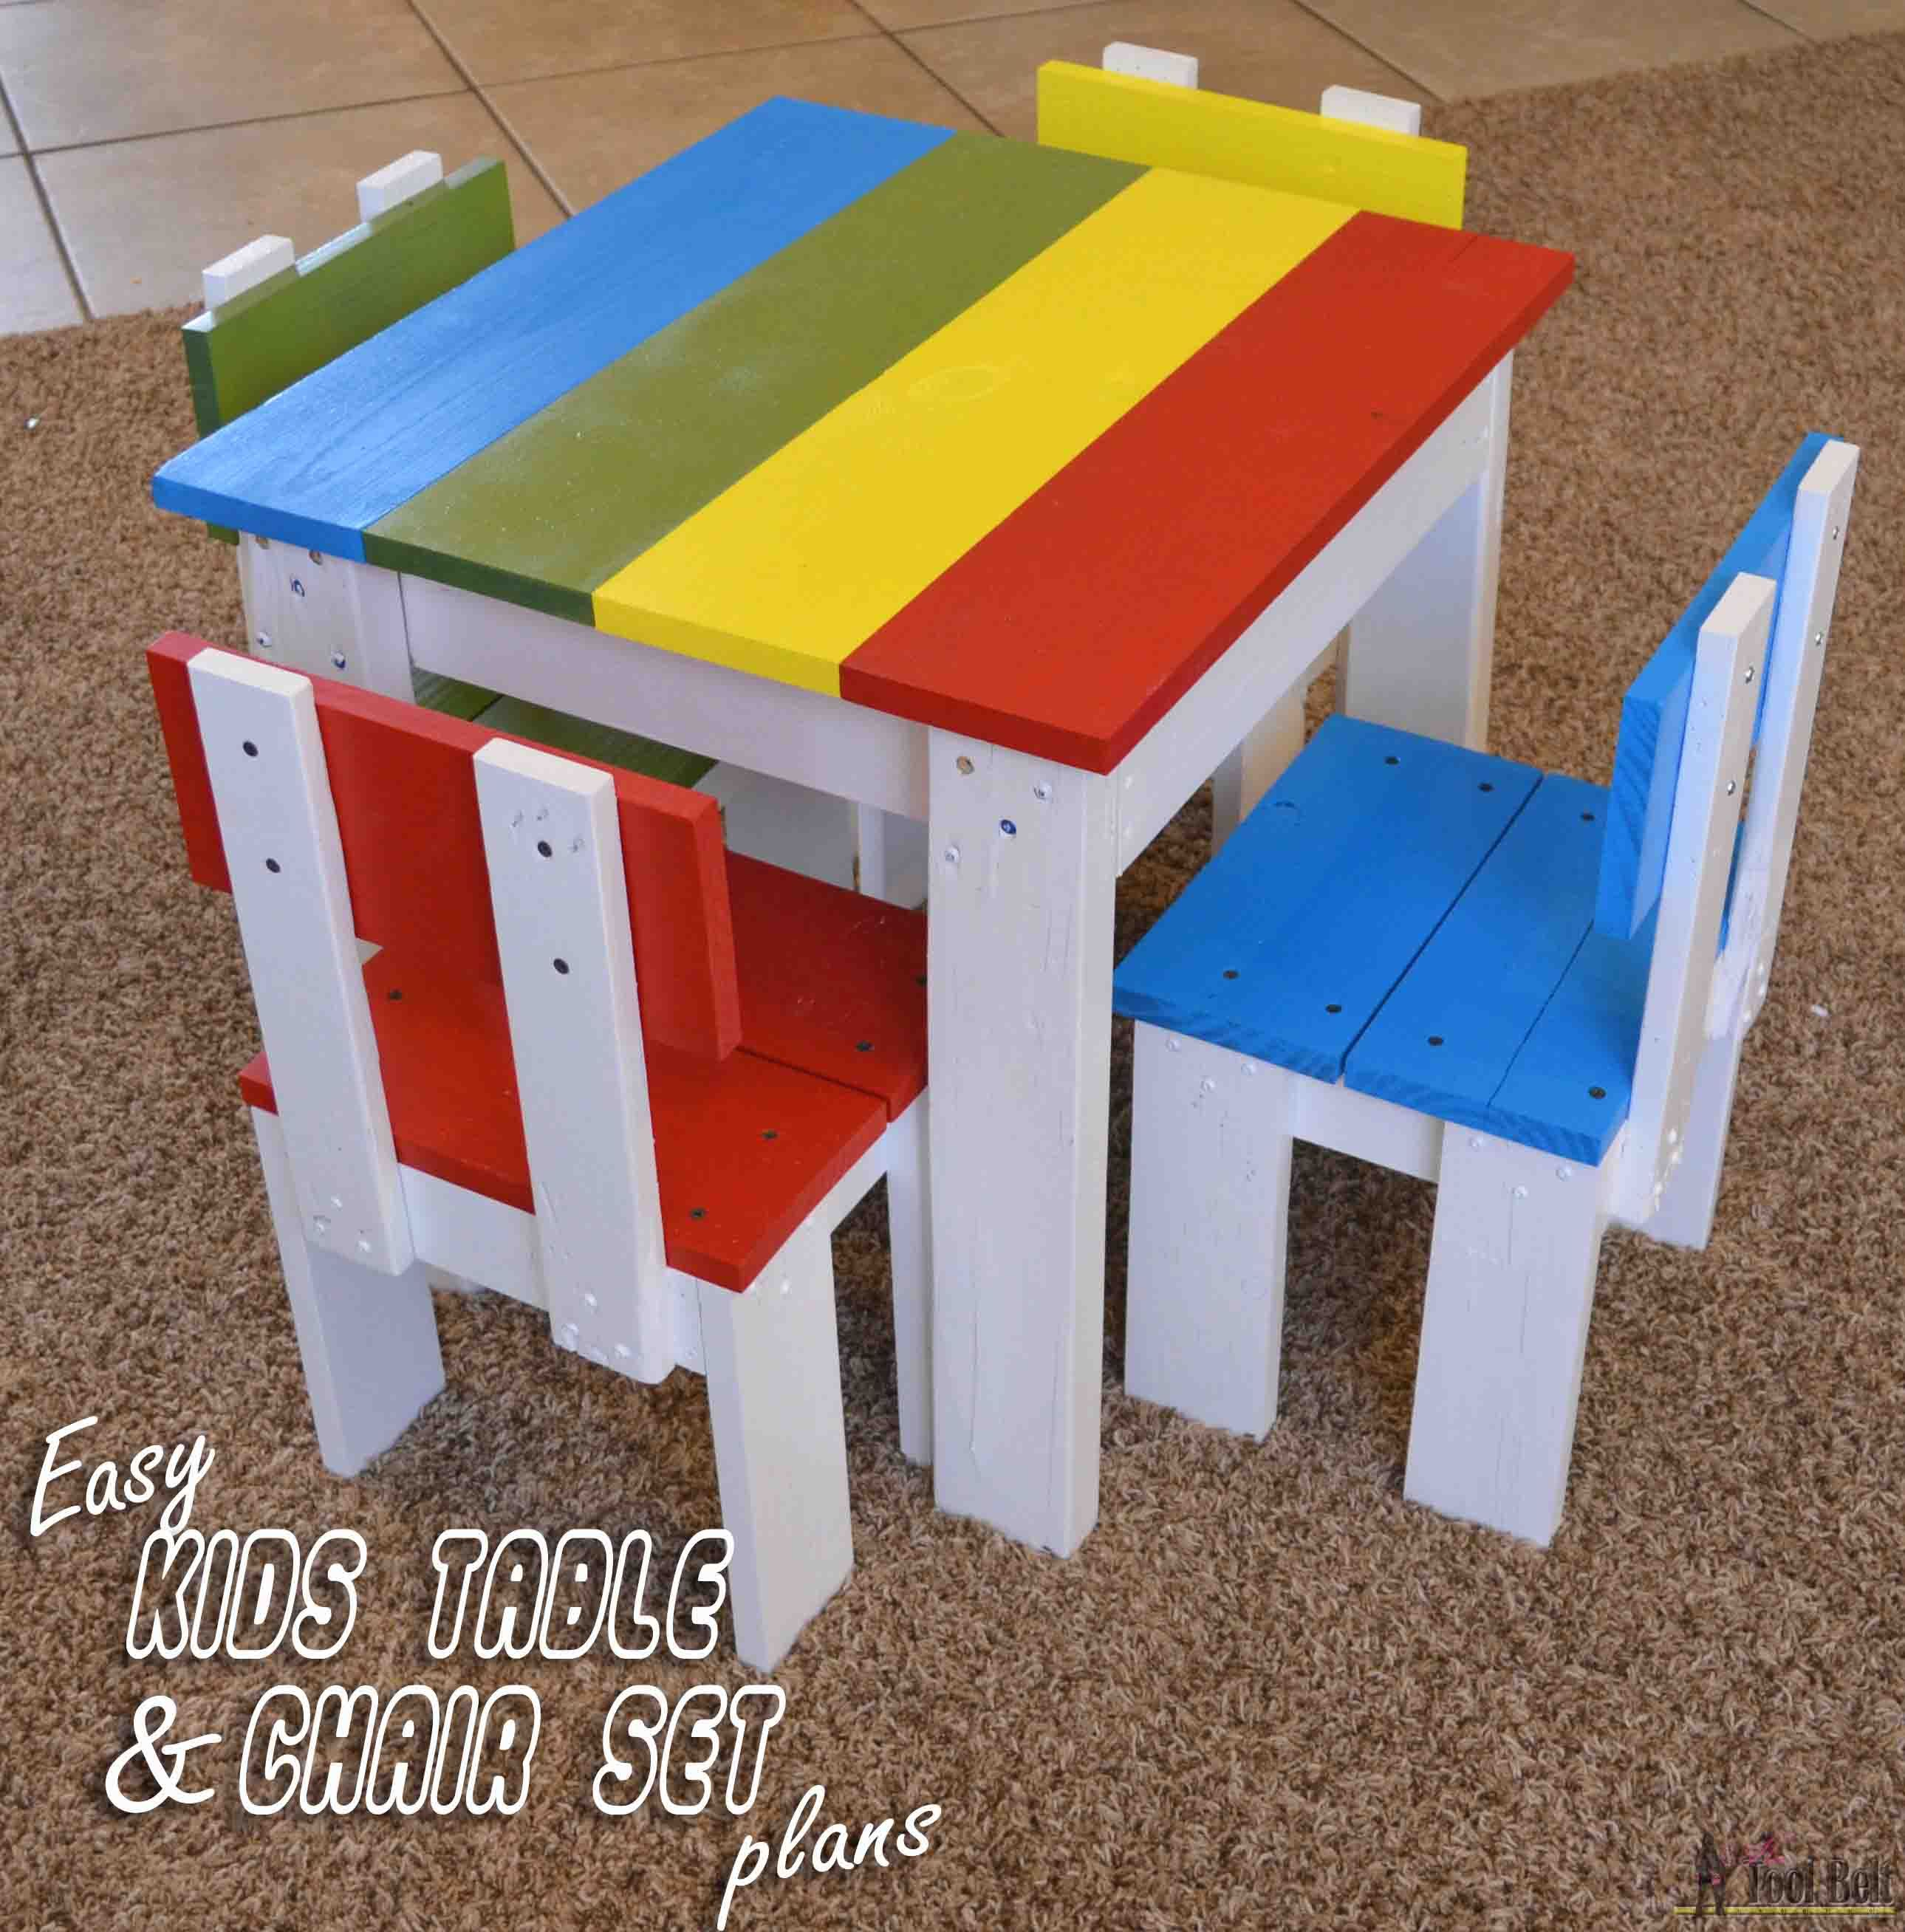 Good Build An Easy Table And Chair Set For The Little Kids. The Set Costs About